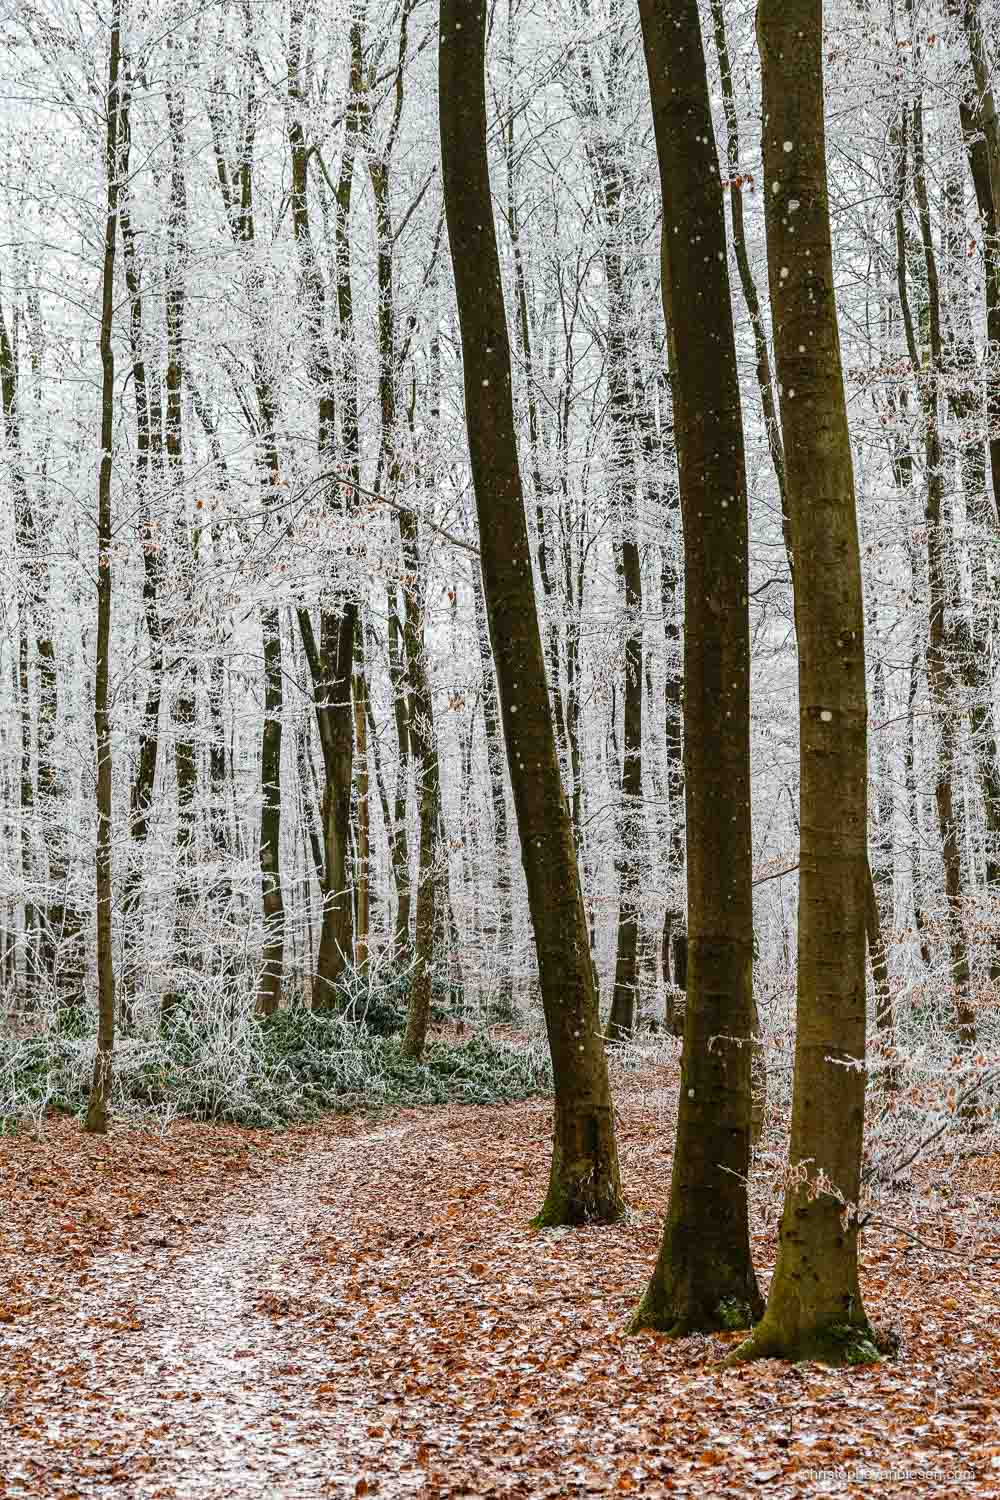 Snow in Luxembourg - Freezing winter in a forest somewhere in the Grand-Duchy of Snow in Luxembourg - Deep into the Frozen Forest